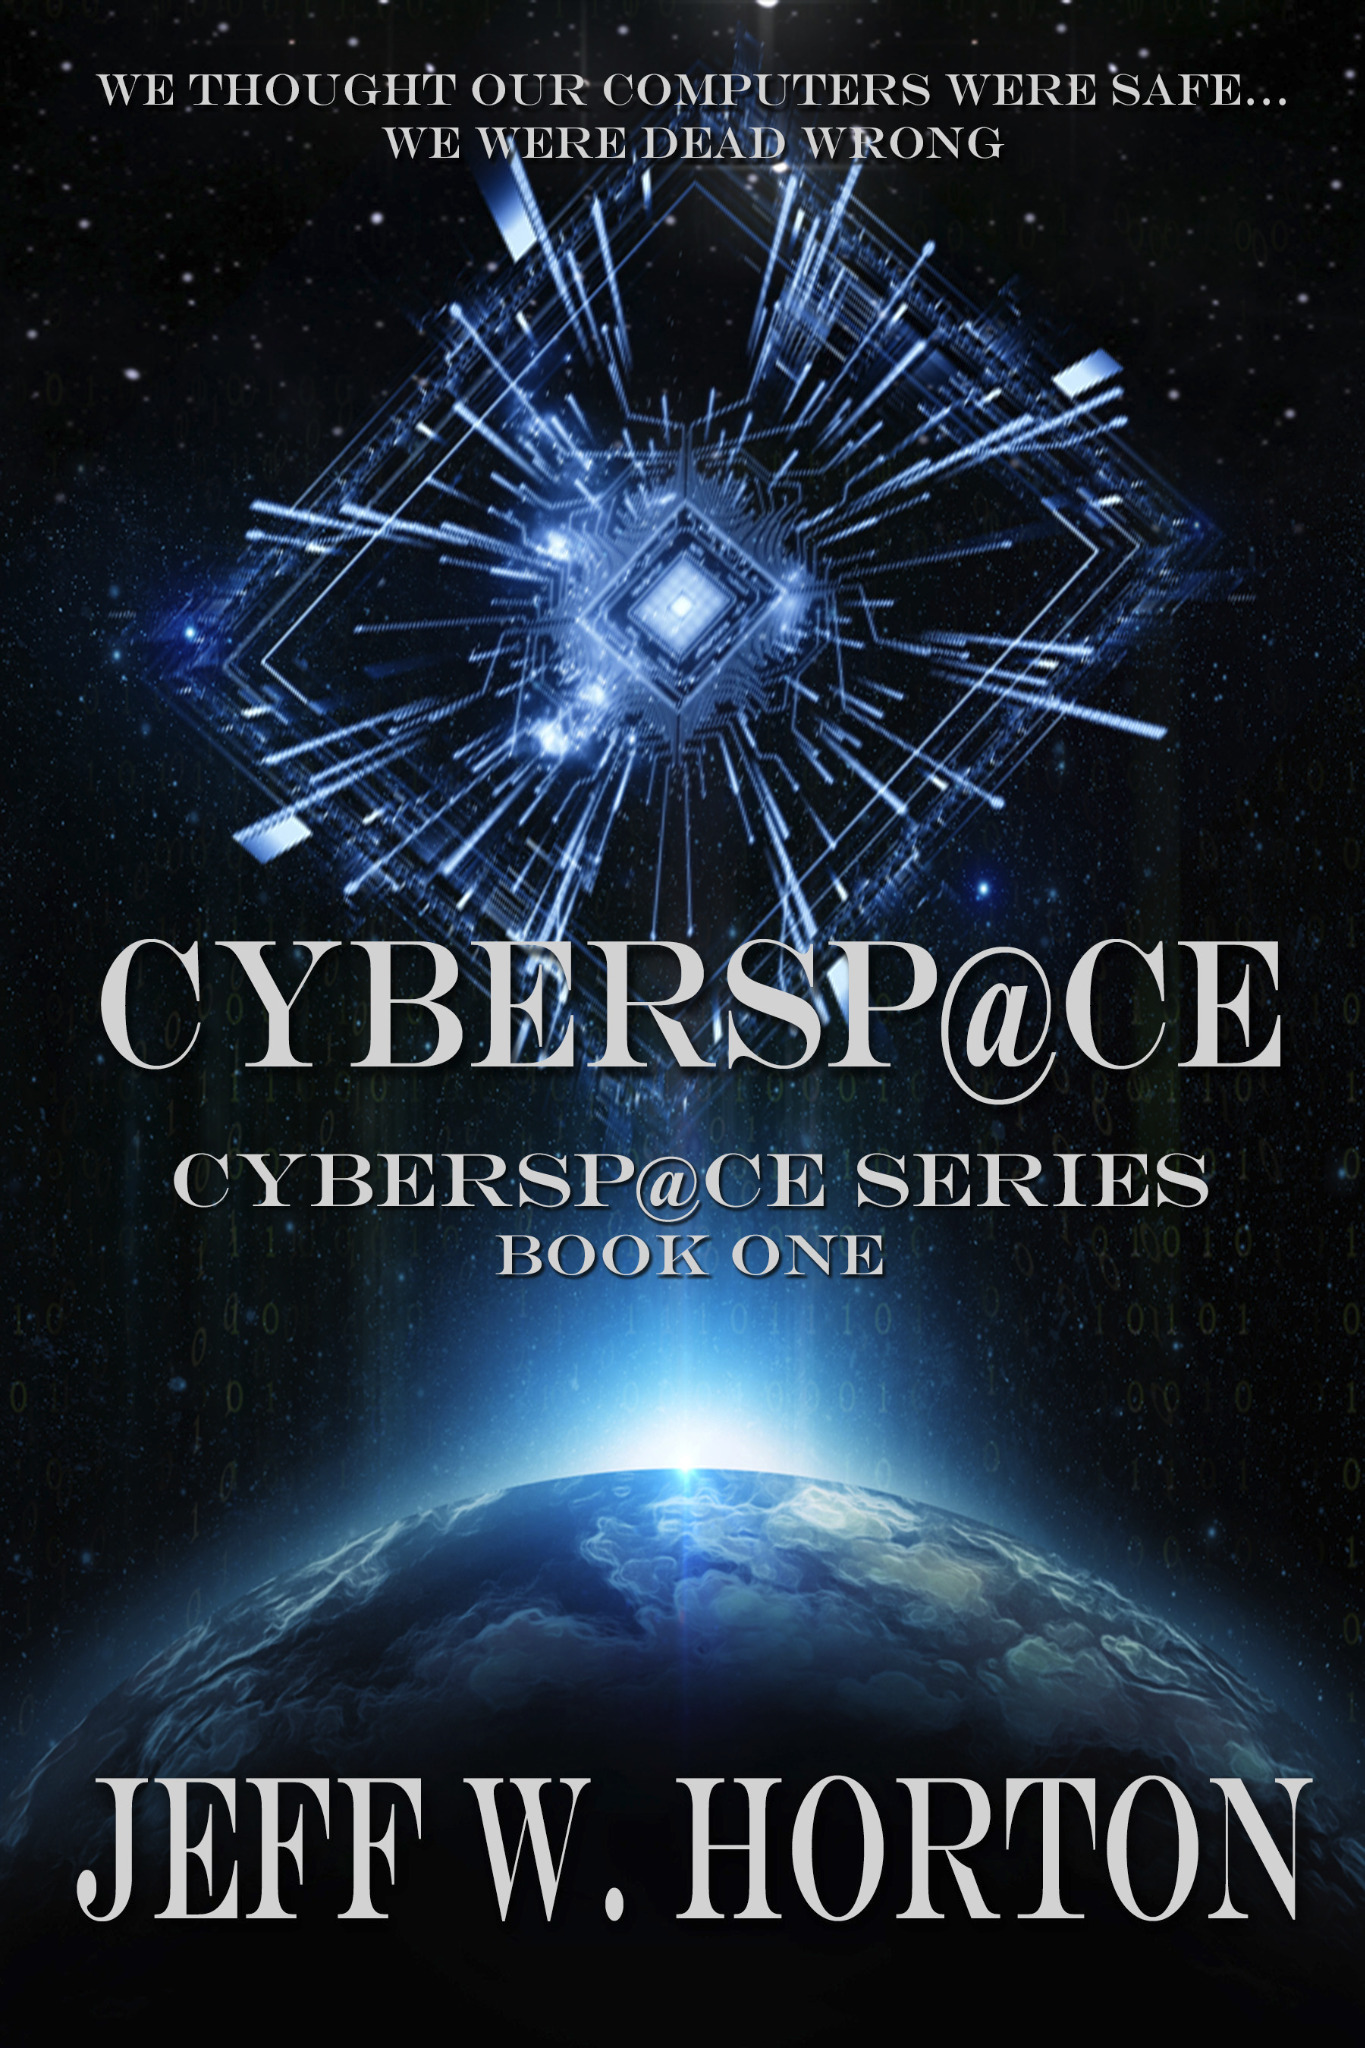 Cybersp@ce - Cybersp@ce Series Book One